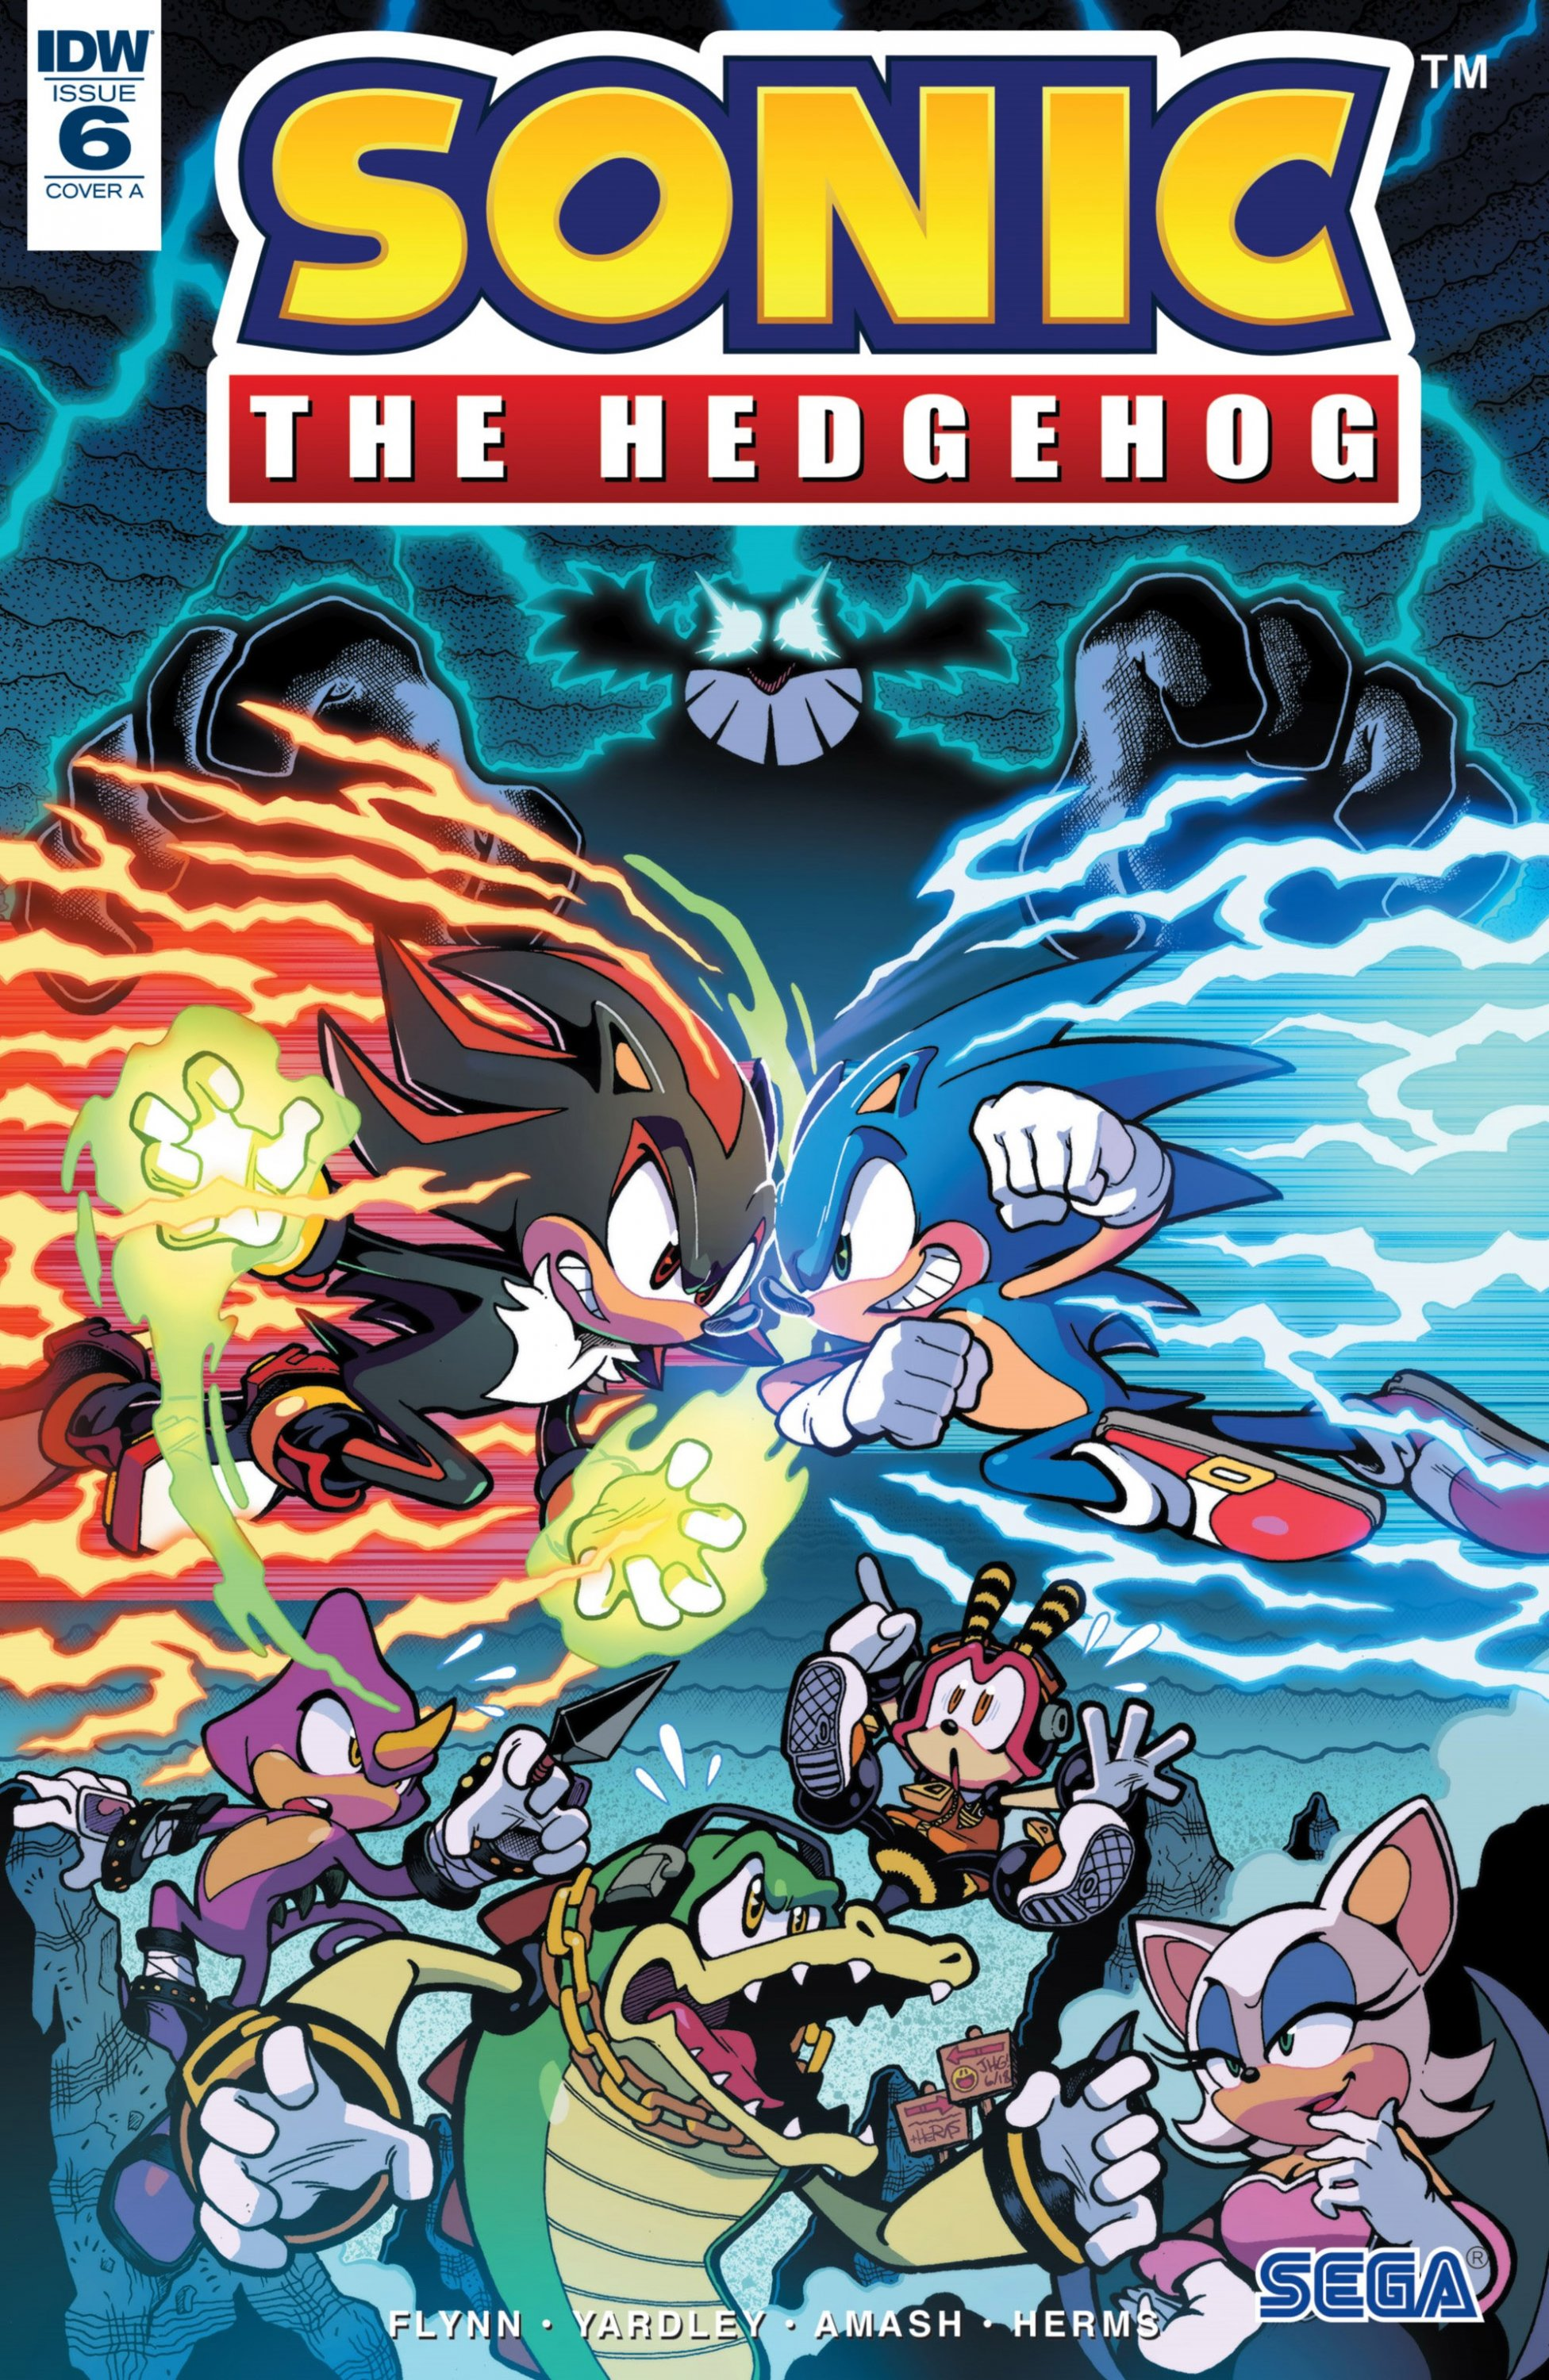 Sonic the Hedgehog 006 (June 2018) (cover a)